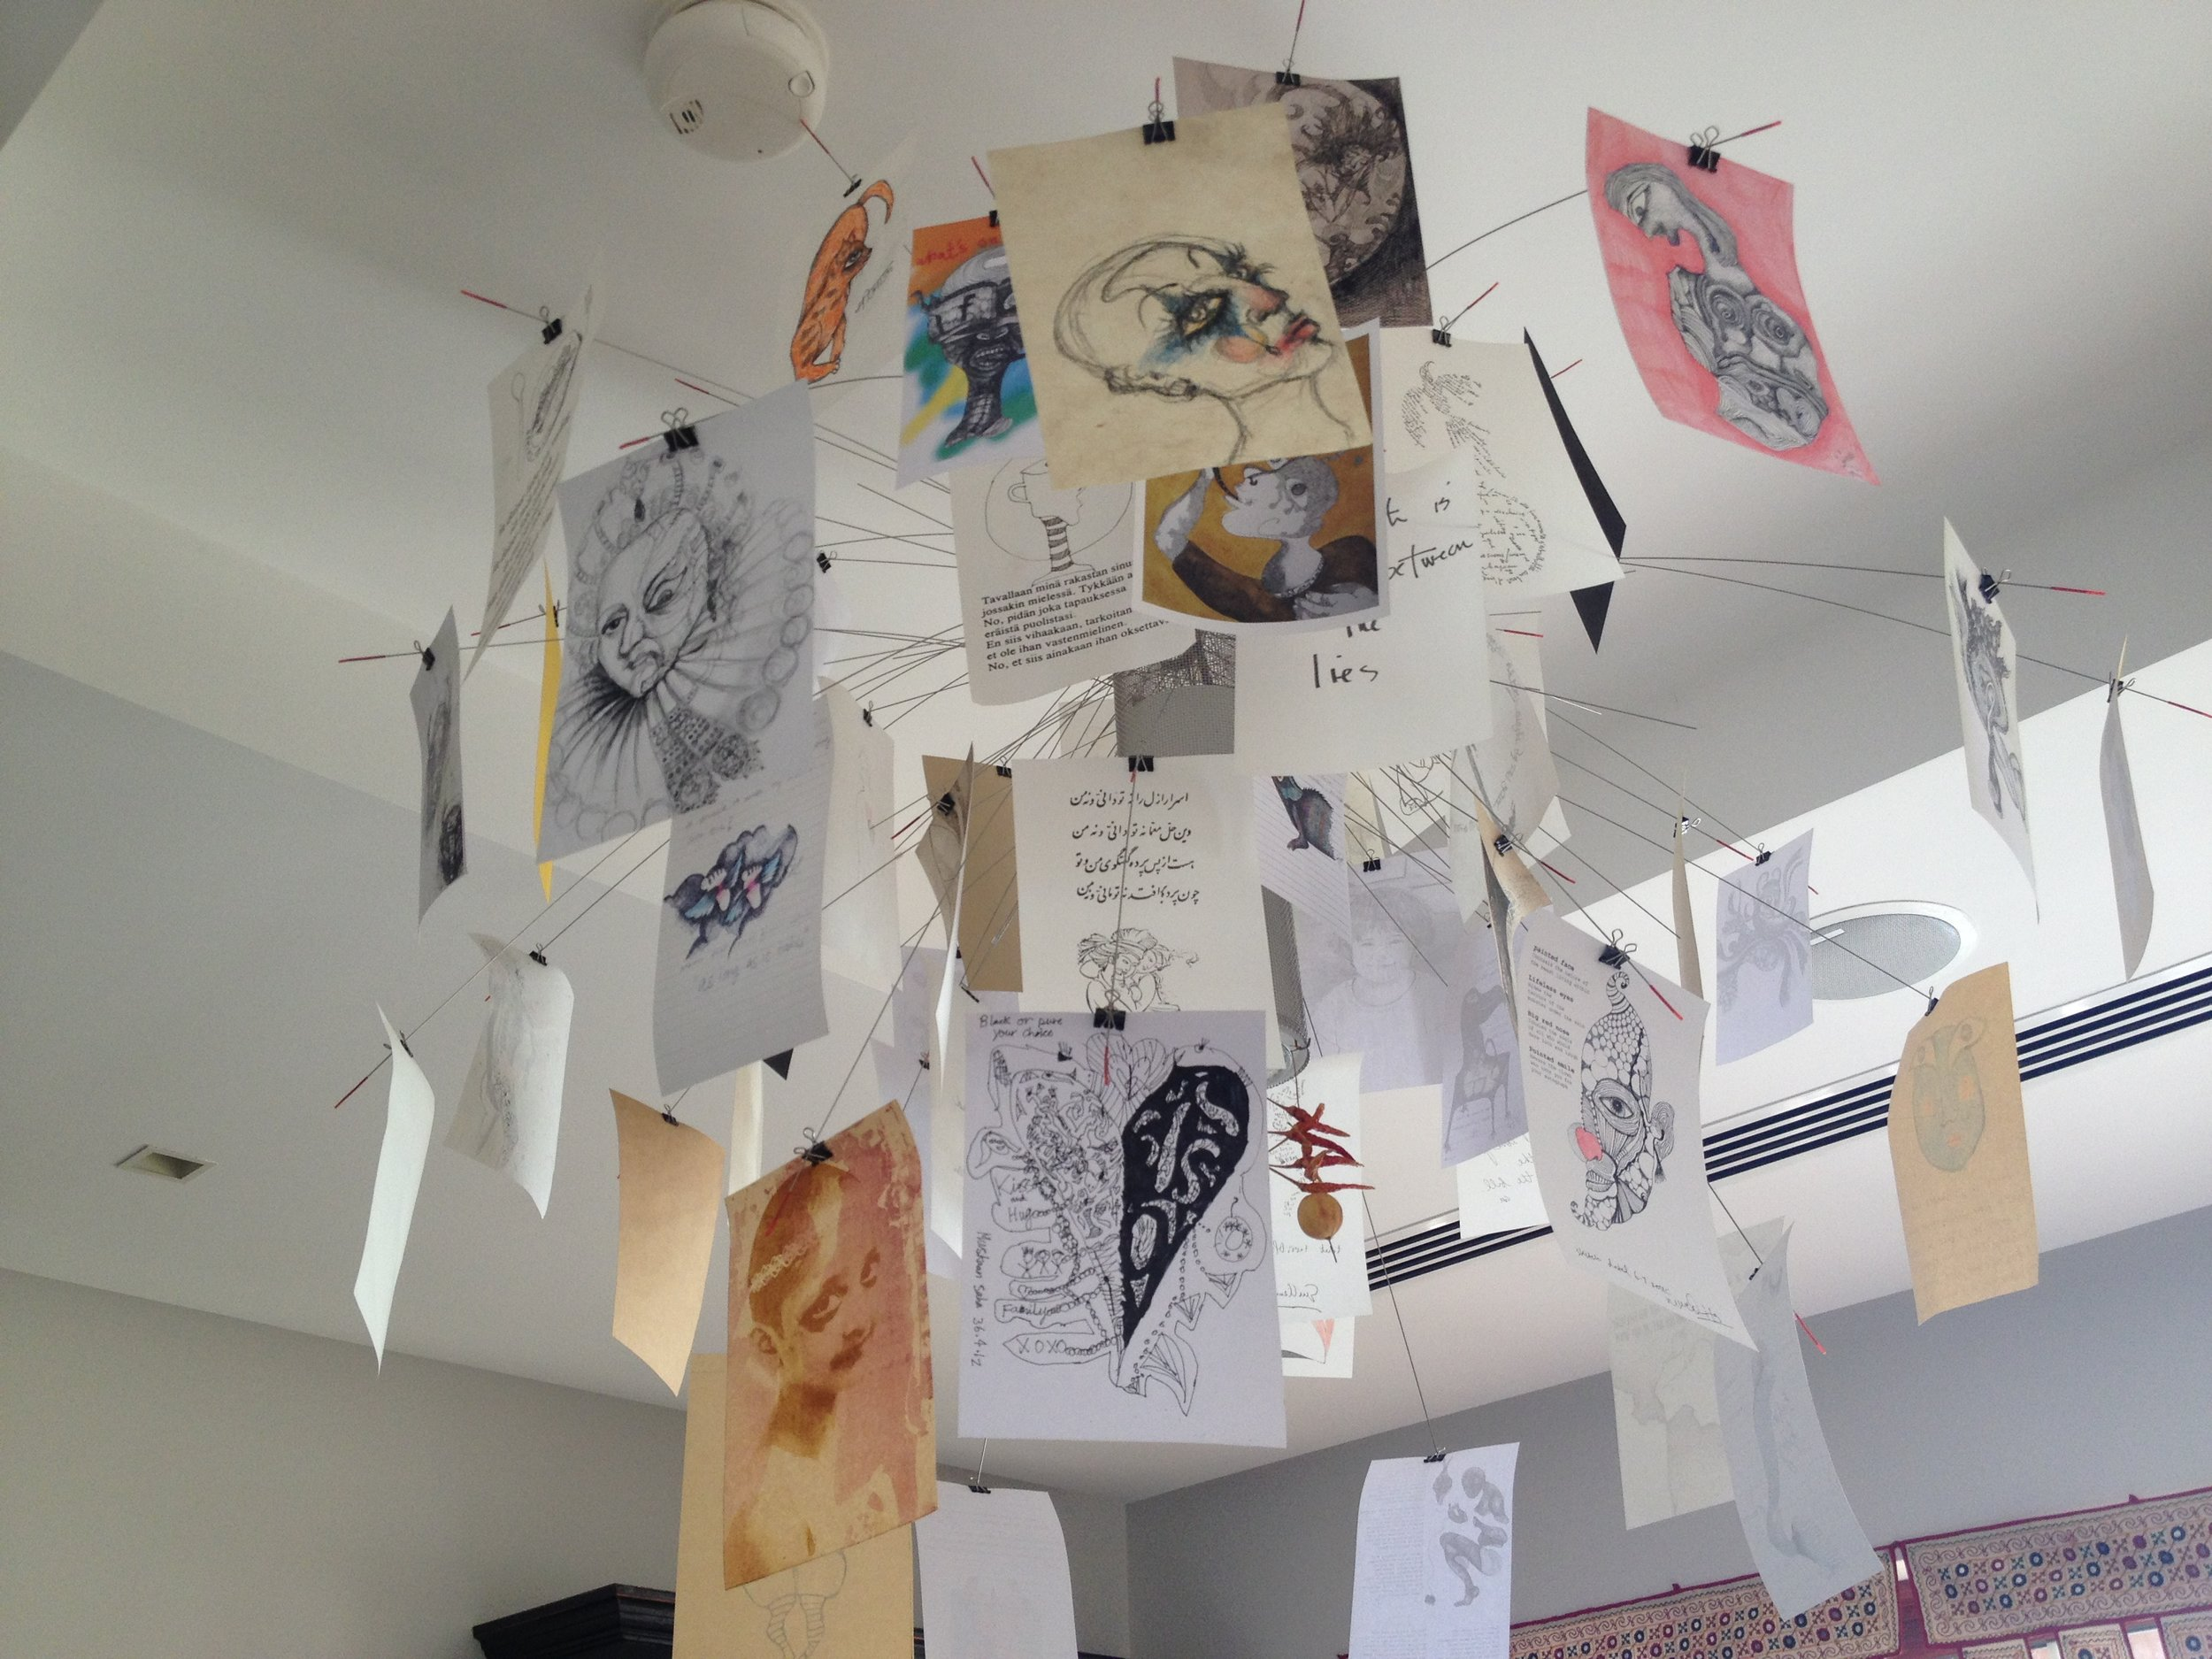 Daily drawings in Nivedita Saha's studio